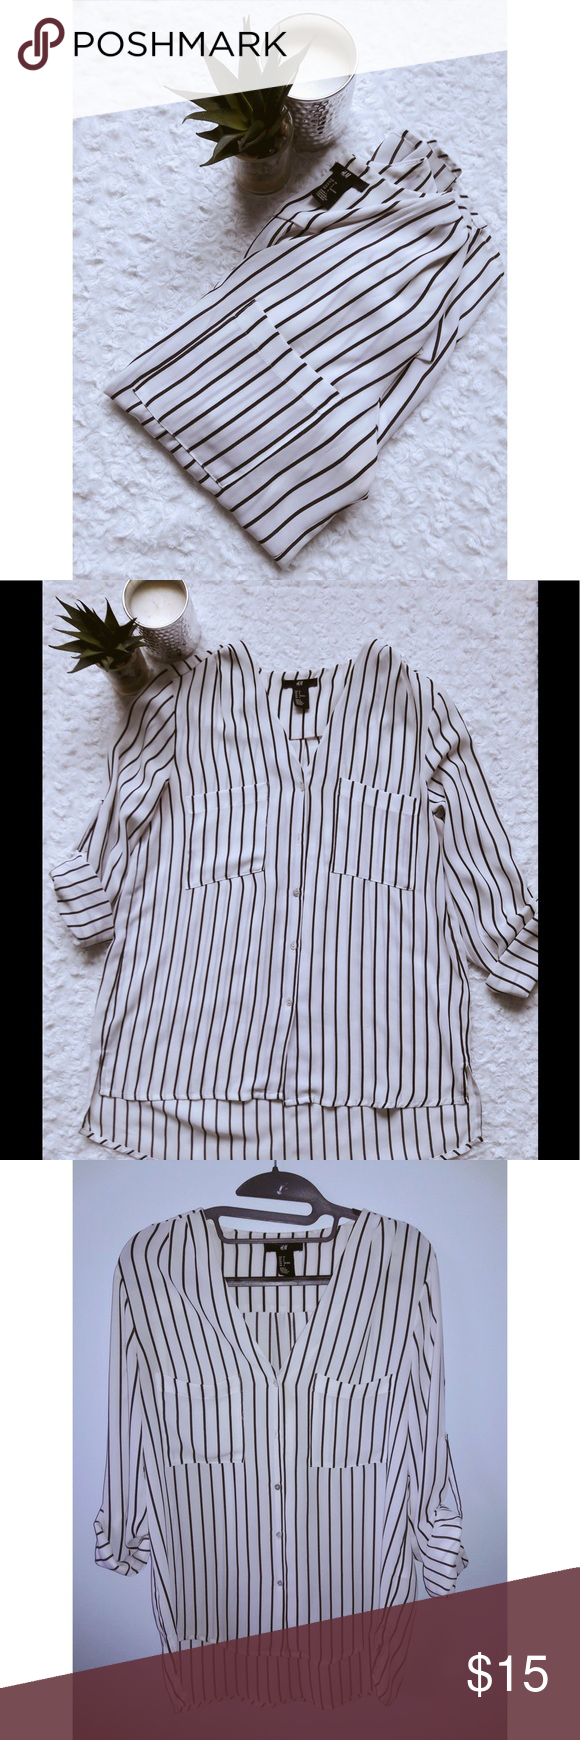 3bbcbf3332 Striped H&M blouse 🌻 ▫️Black and white vertical striped, button down, long  sleeve